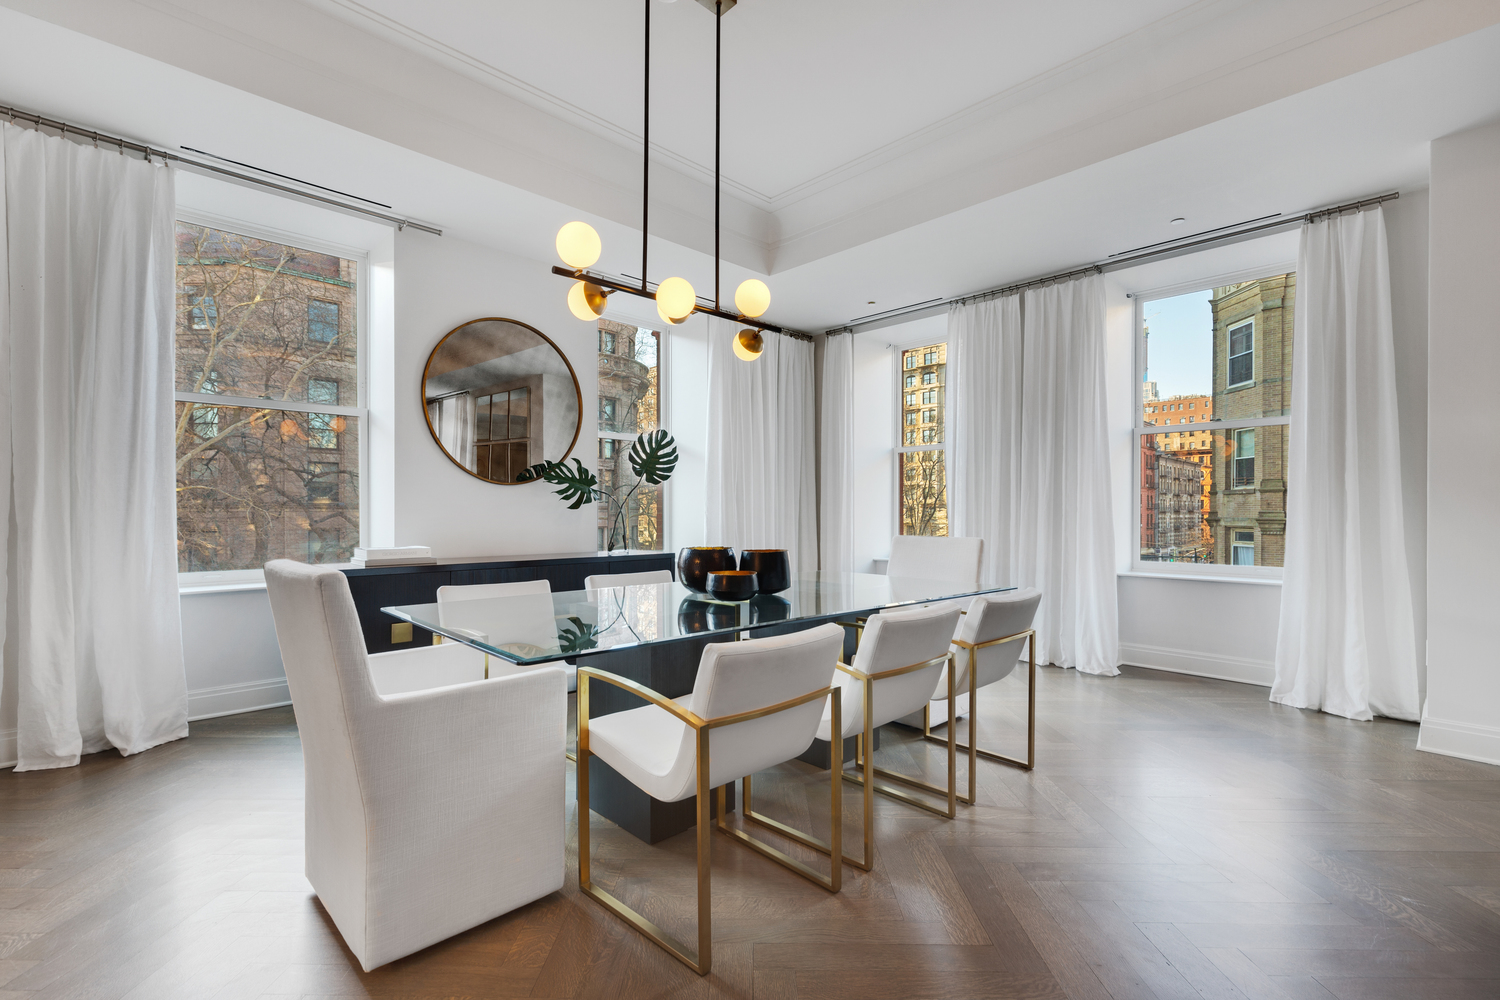 CSG_101_West_78th_Street_4A_New_York_NY_Penthouse_-_15_Photos_6_20190322-125642.jpg